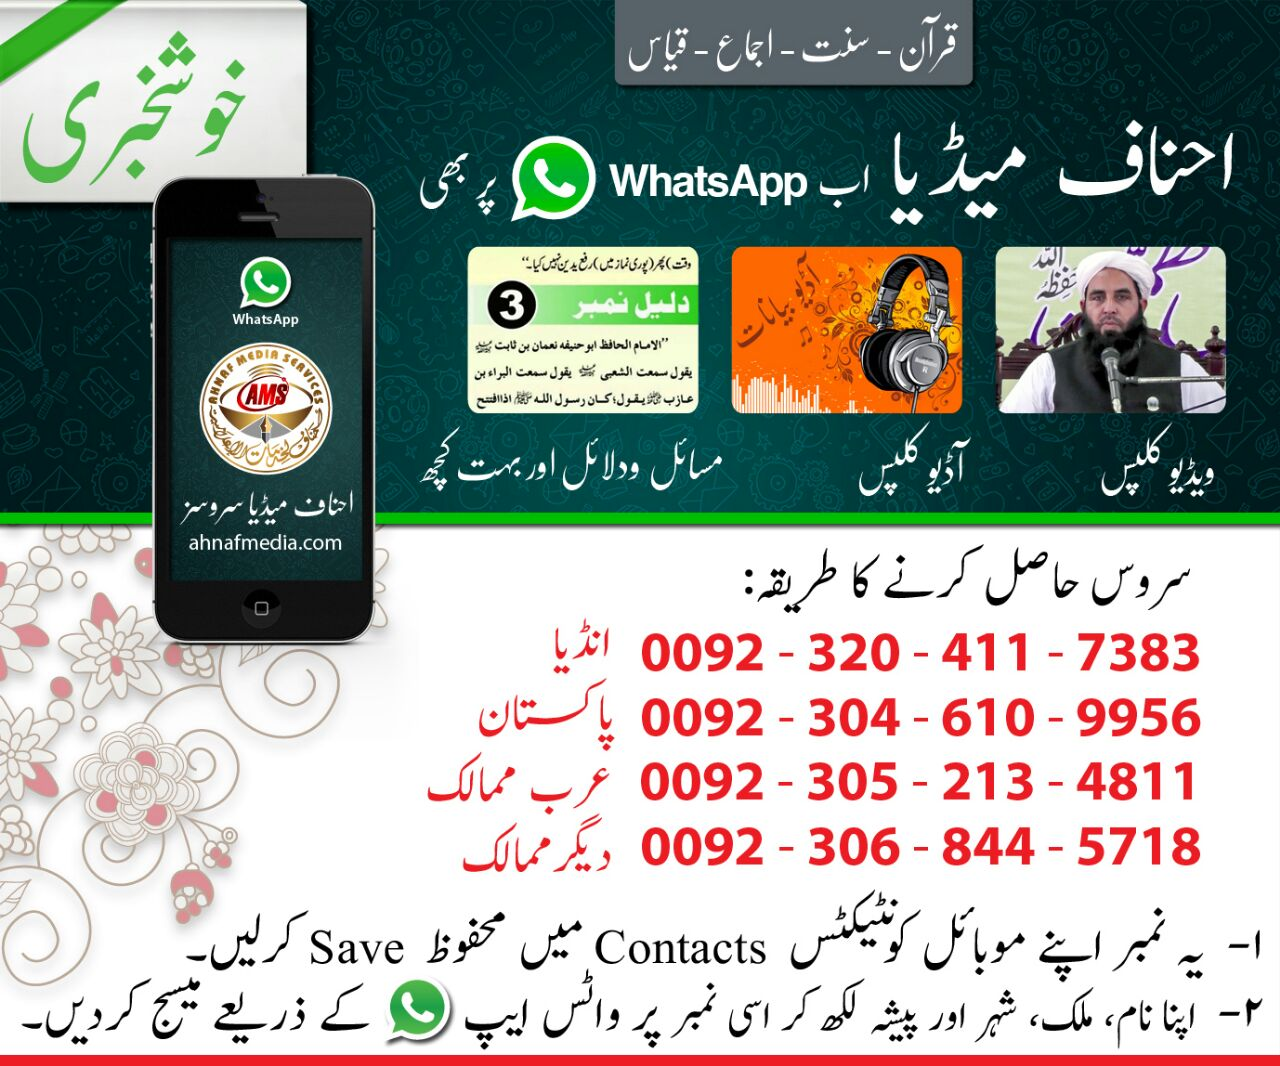 WhatsApp Service Started by Ahnaf Media Services and Molana